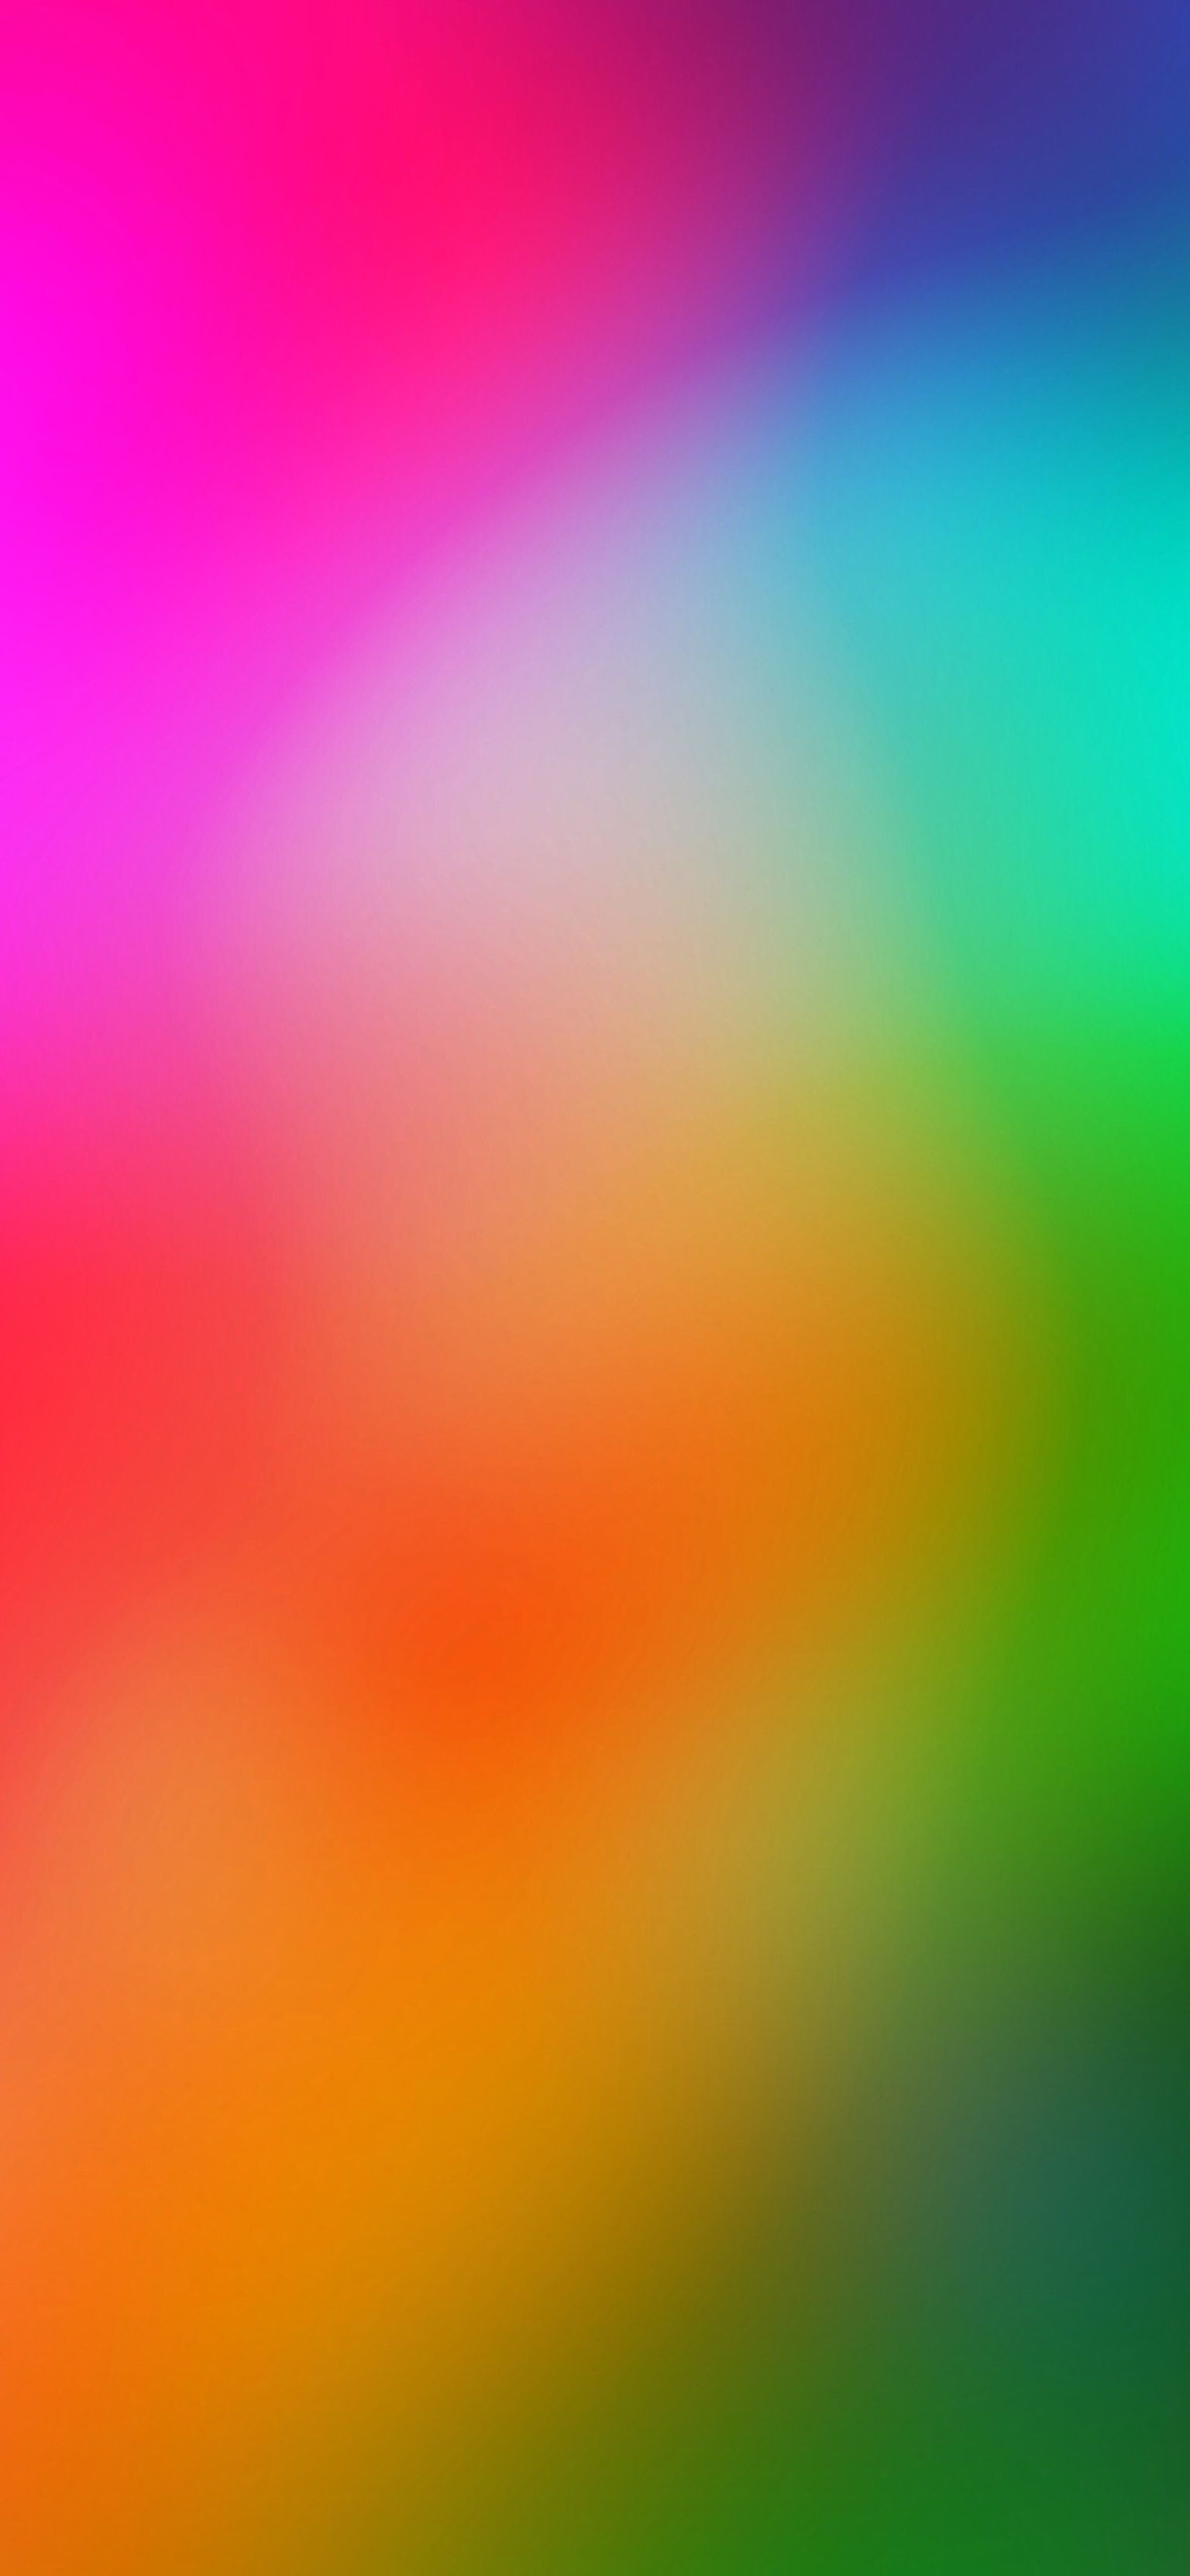 SO much color... (by AR7) Iphone wallpaper gradient